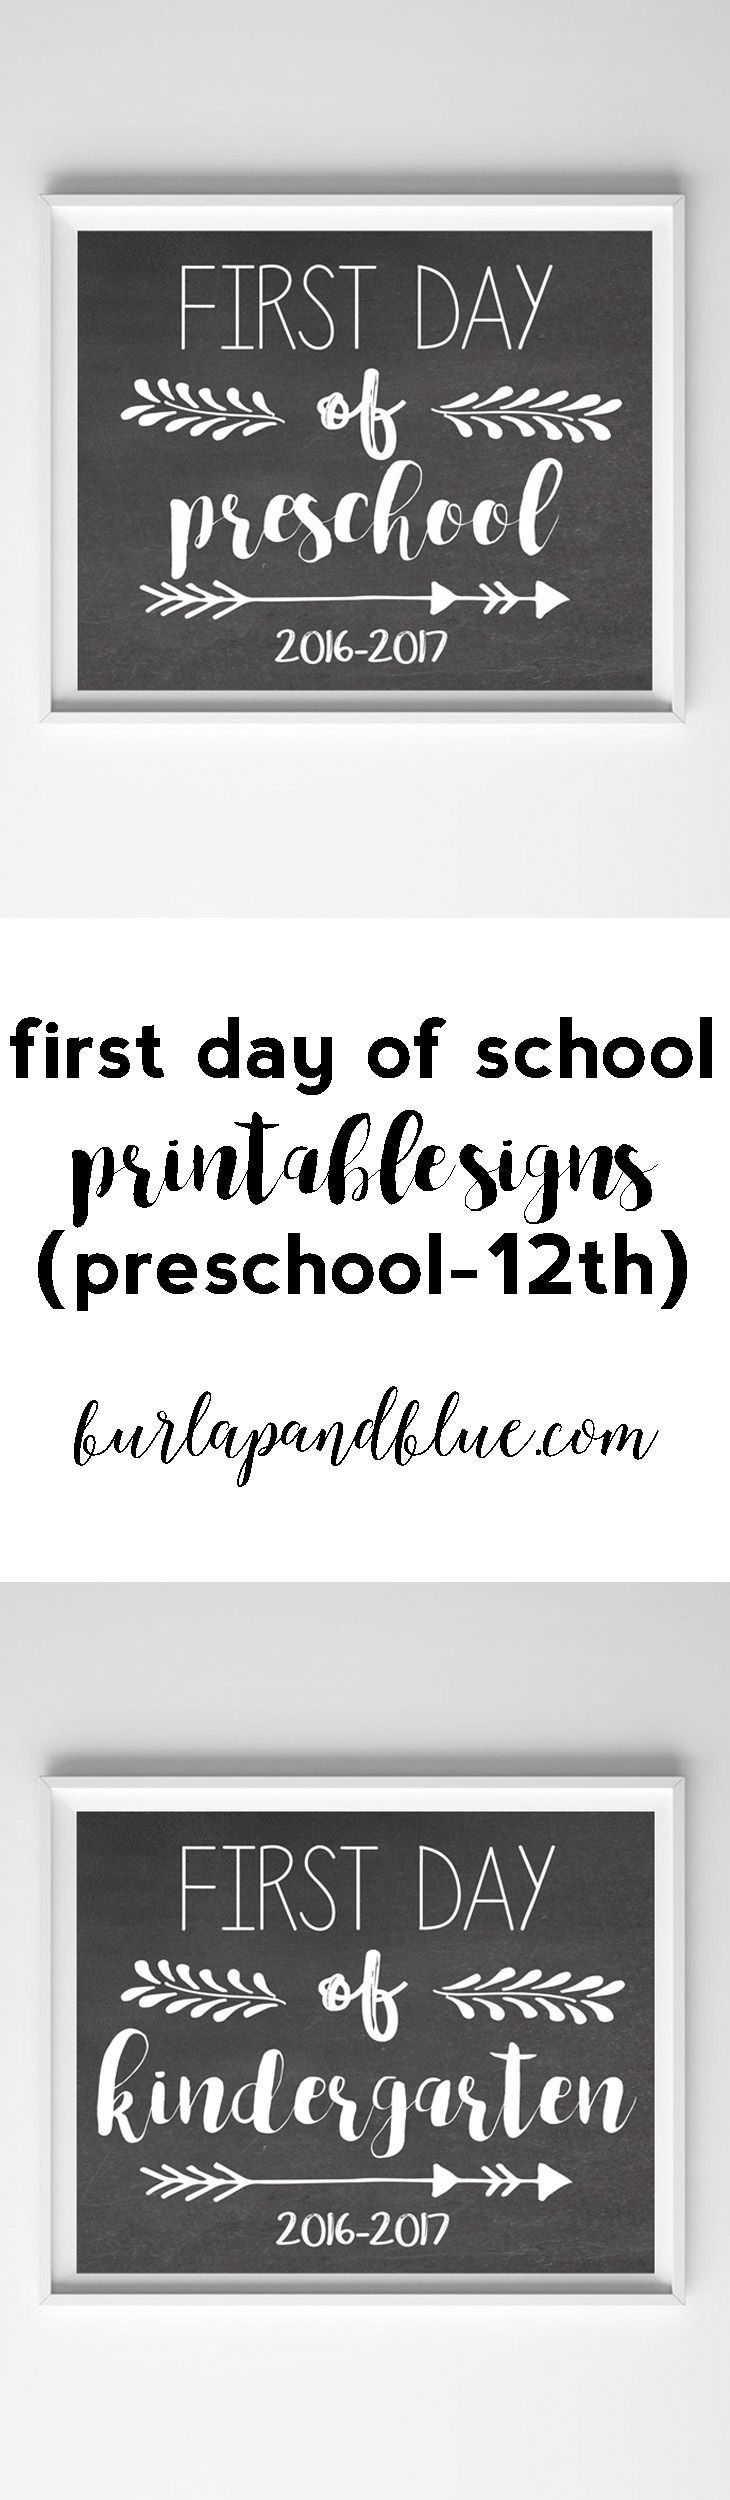 first day of school printable chalkboard signs-preschool through 12th grade available.